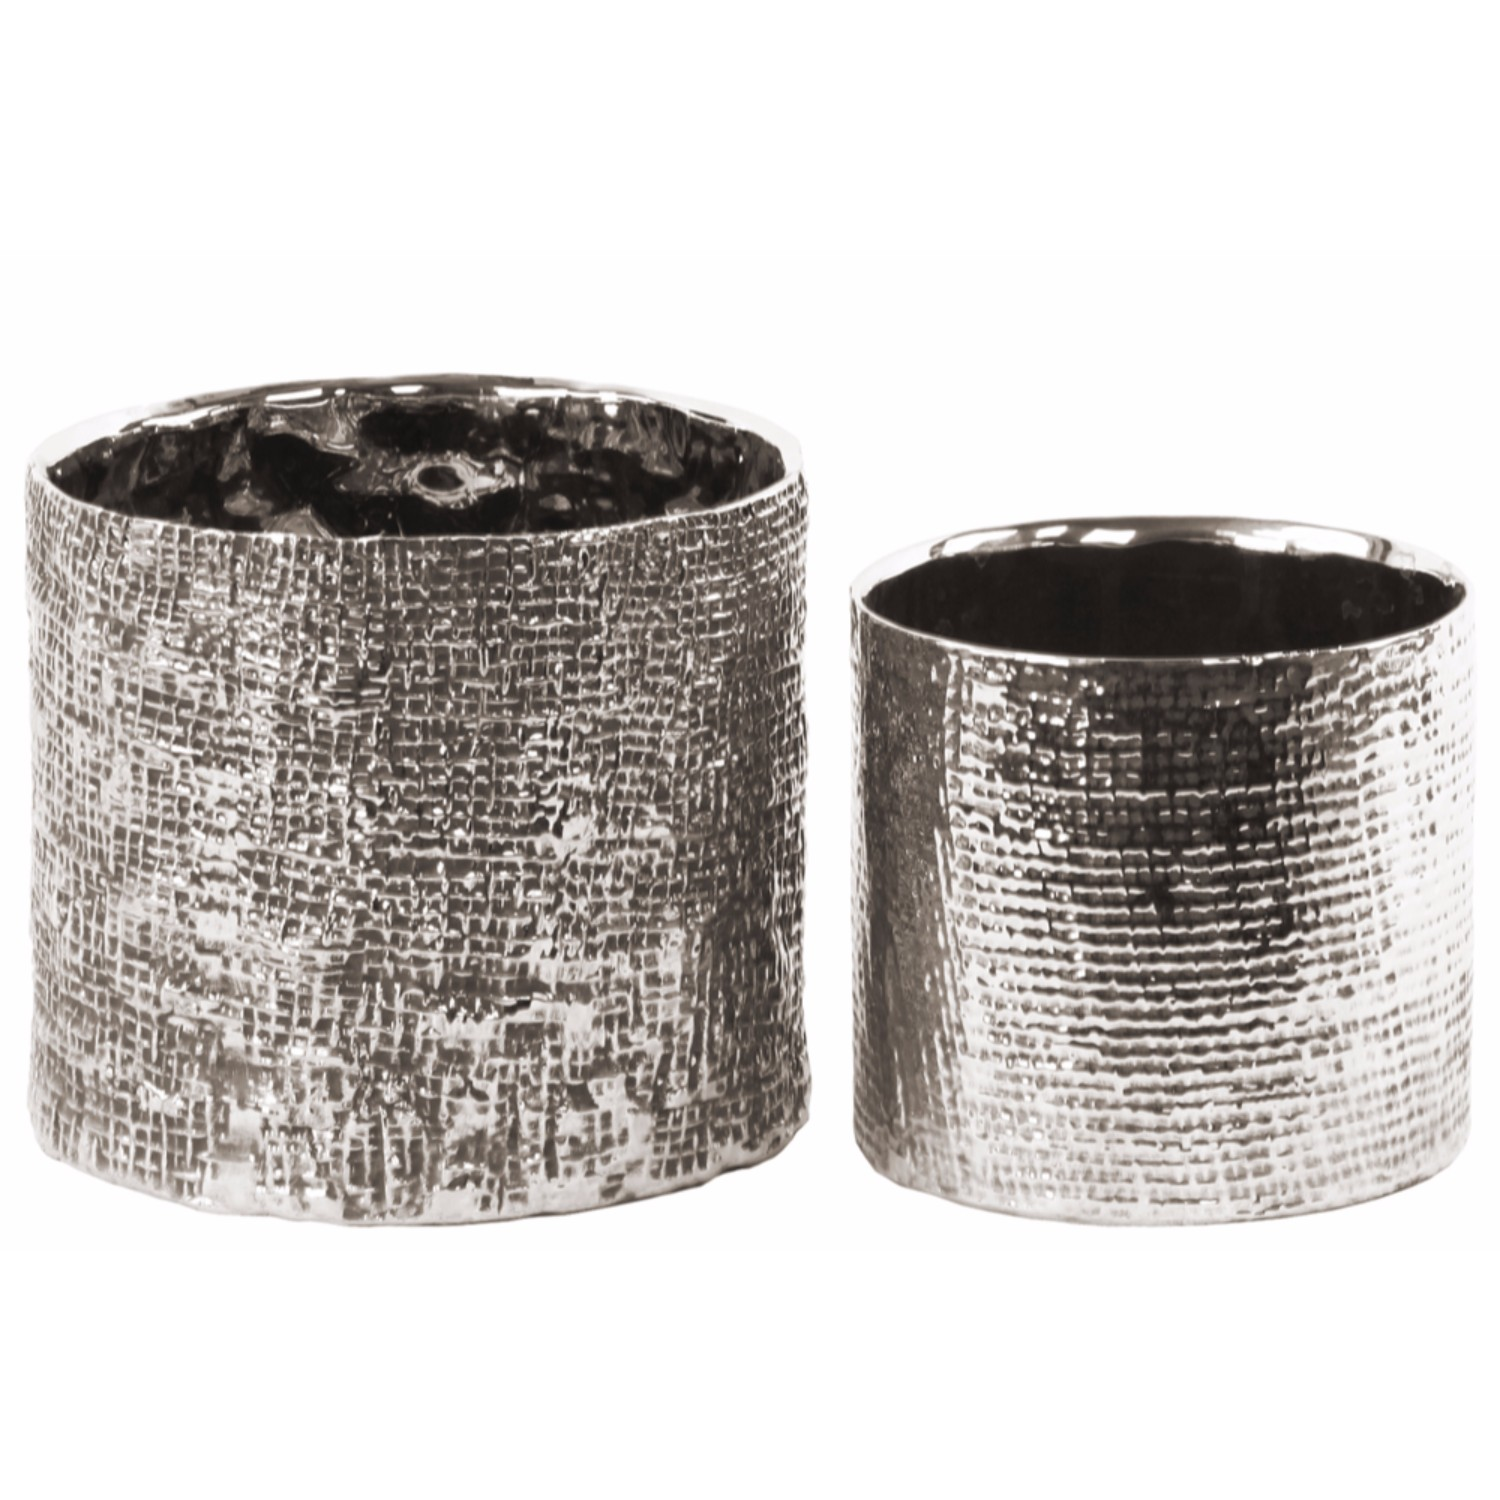 Benzara Tall Round Planter with Engraved Crises Cross Design Set of 2 Silver